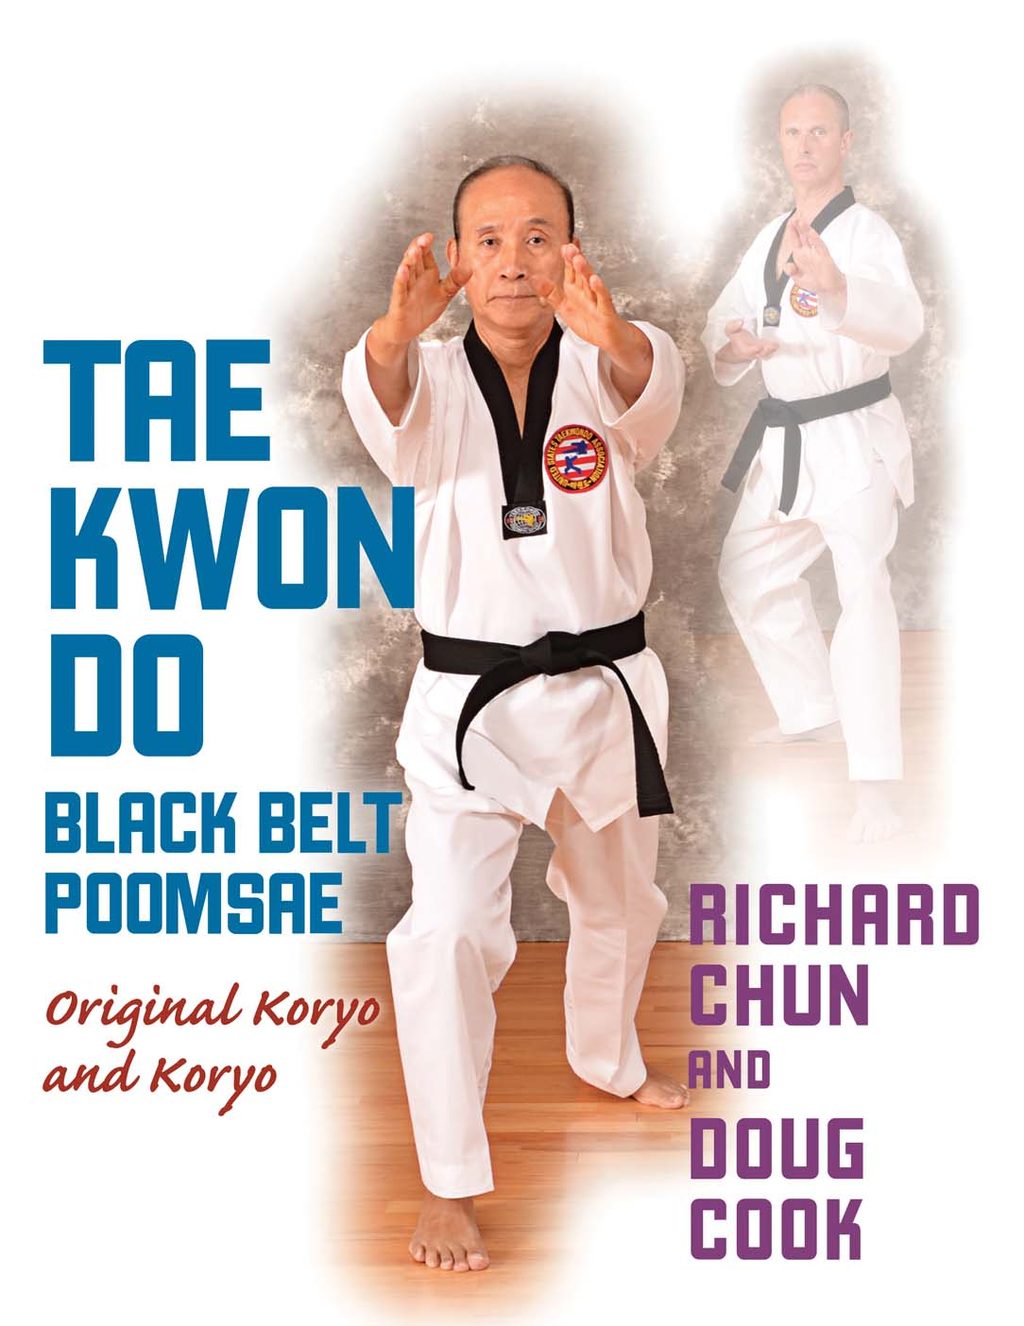 Taekwondo Black Belt Poomsae Original Koryo and Koryo